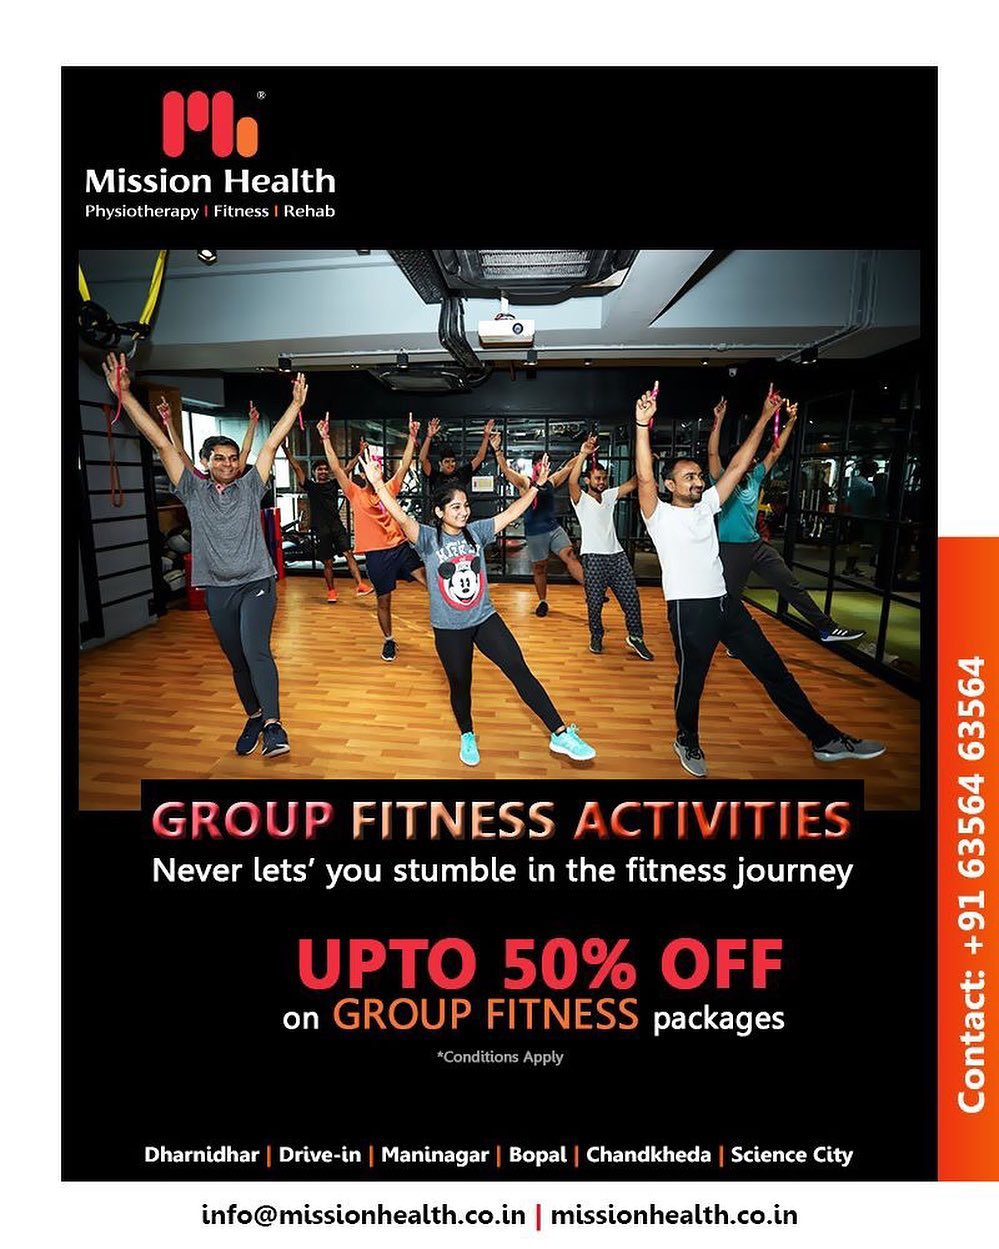 The gang of friends who workouts together, stays fit & fabulous together!  #AnniversaryCelebrations #12thAnniversary #FitnessOffers #JuneOffers #GetFit #MissionHealth #MissionHealthIndia #Fitness #Physiotherapy #Rehab